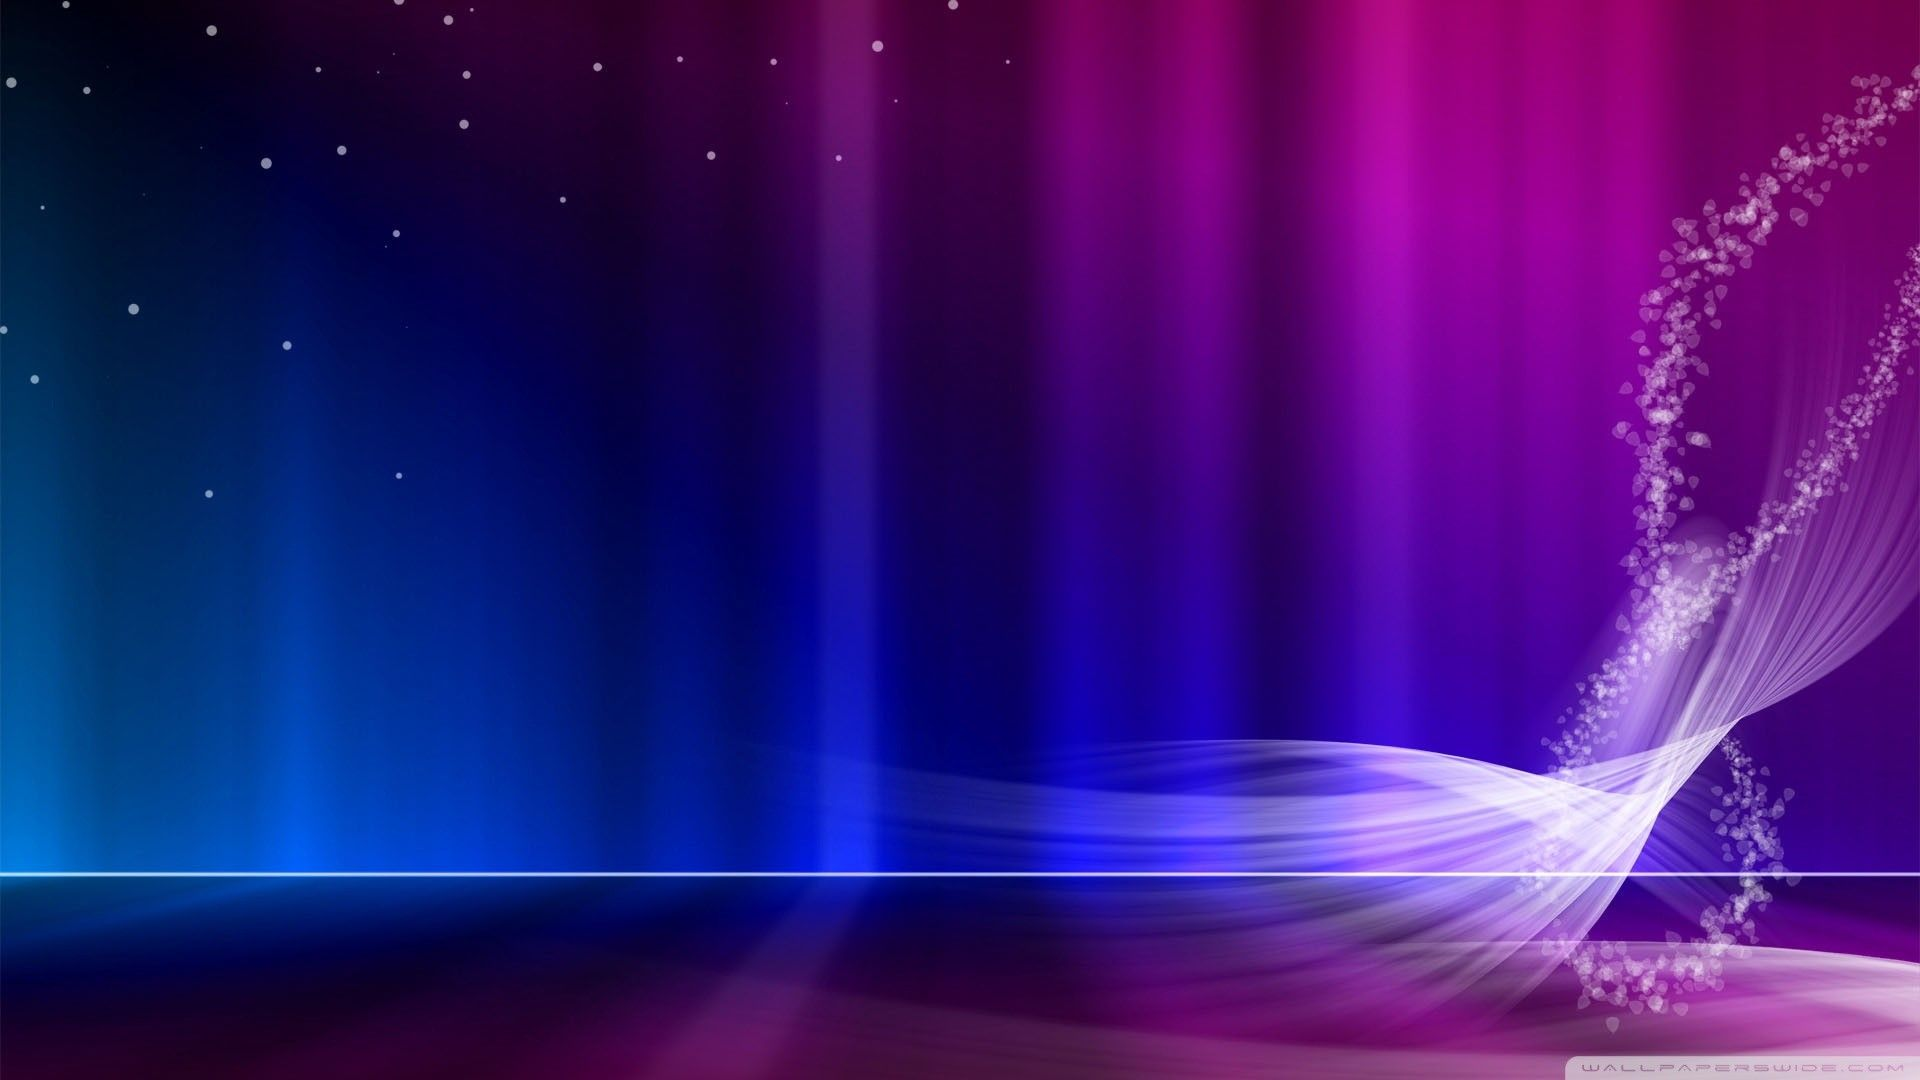 Res 1920x1080 Blue Purple Wallpapers Purple Backgrounds Cool Backgrounds Wallpapers Cool Wallpaper